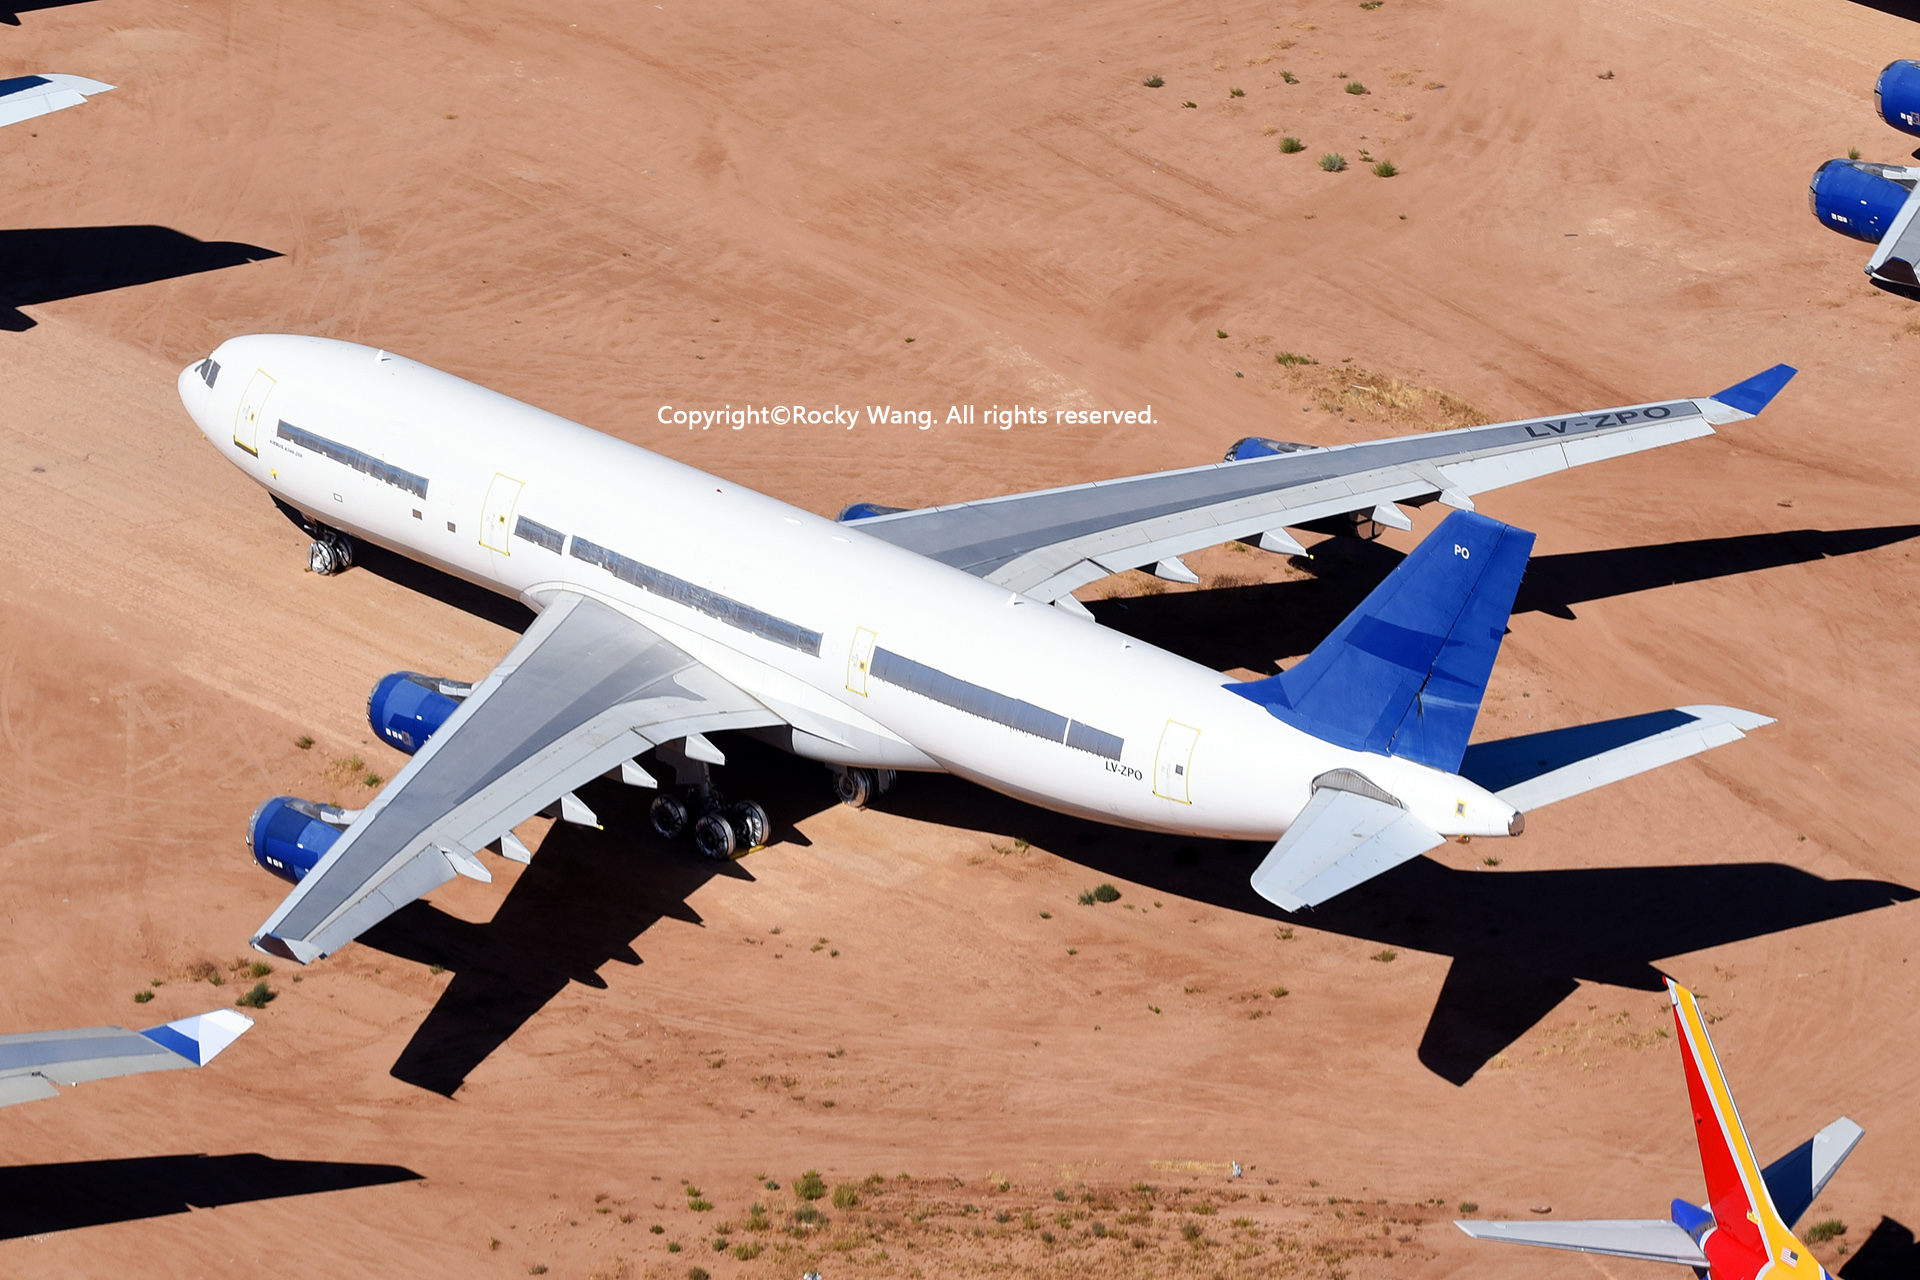 Re:[原创]沙漠29图+彩蛋 AIRBUS A340-211 LV-ZPO Victorville-Southern California Logistic